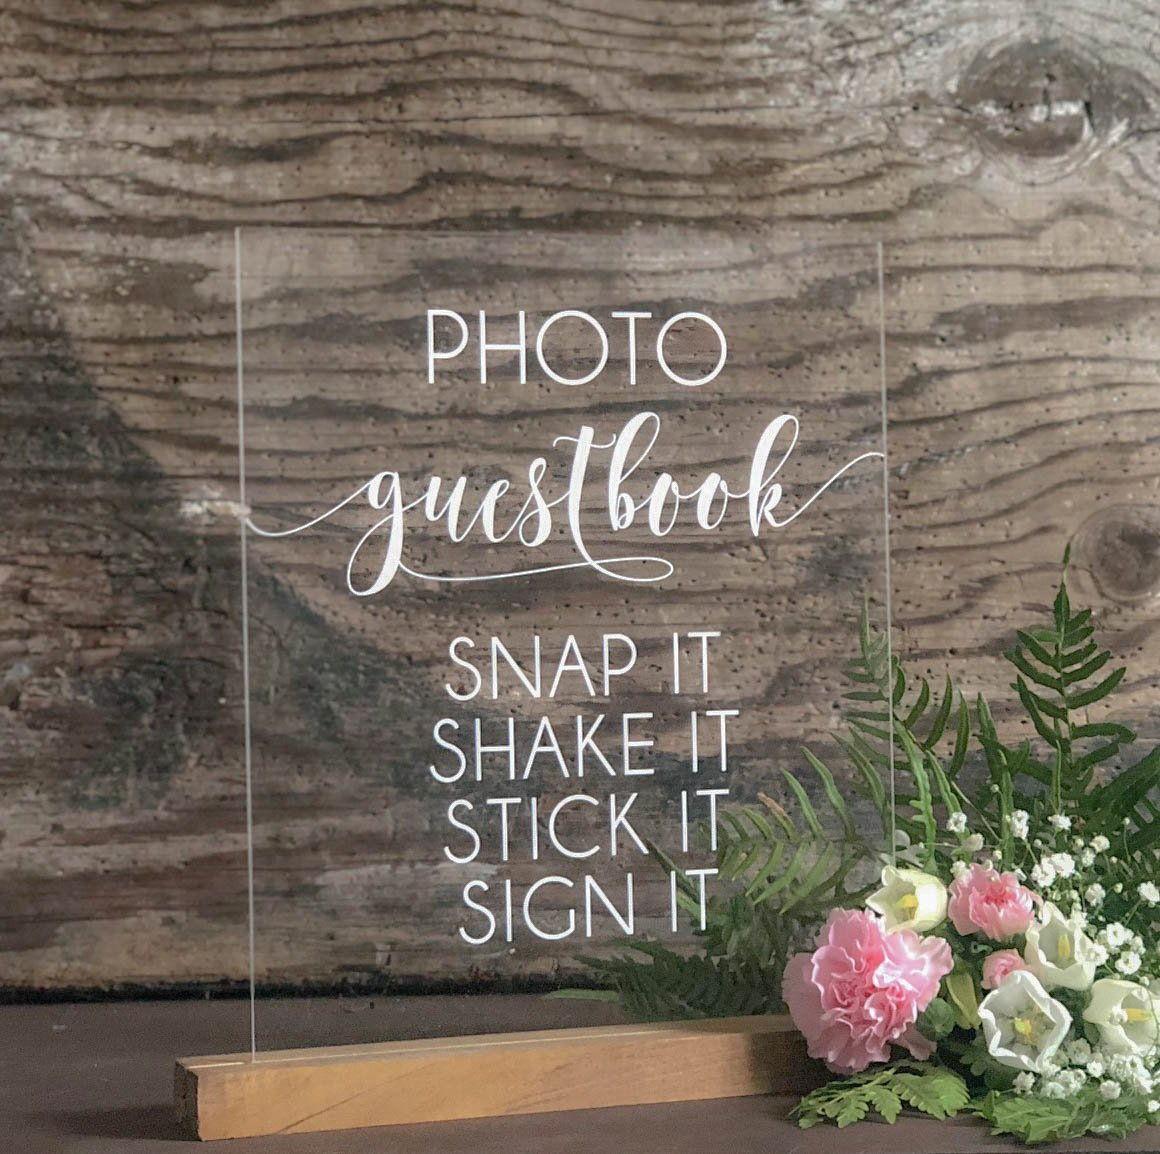 Photobooth GuestBook Sign   Snap It, Shake it, Sign it   Acrylic Guestbook Wedding Sign   Photobooth Guestbook   Acrylic Guest Book